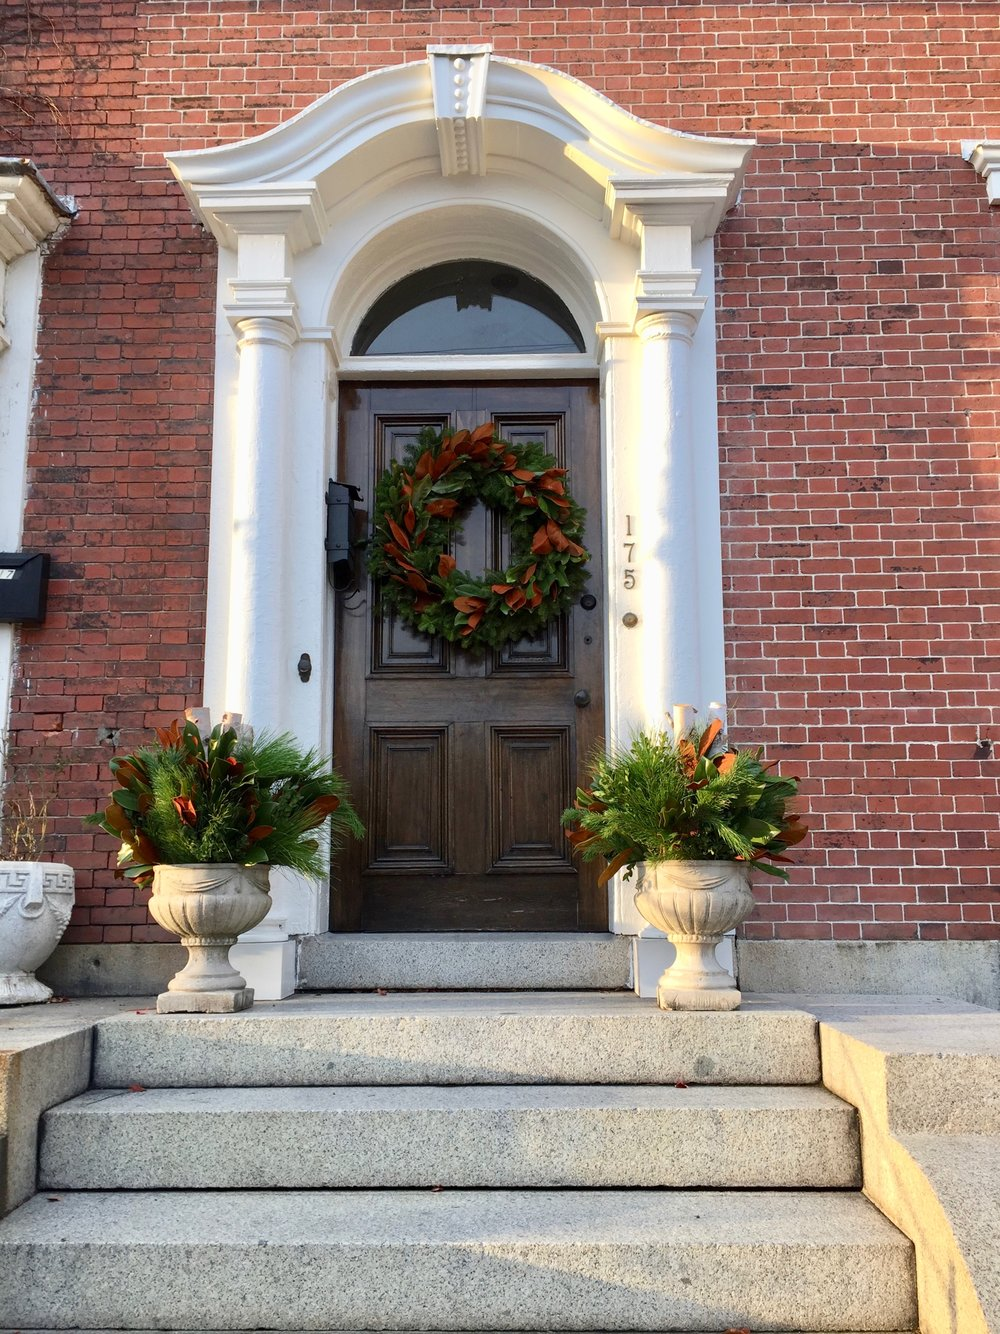 Christmas Wreath ideas from New England - portsmouth nh 11.jpg